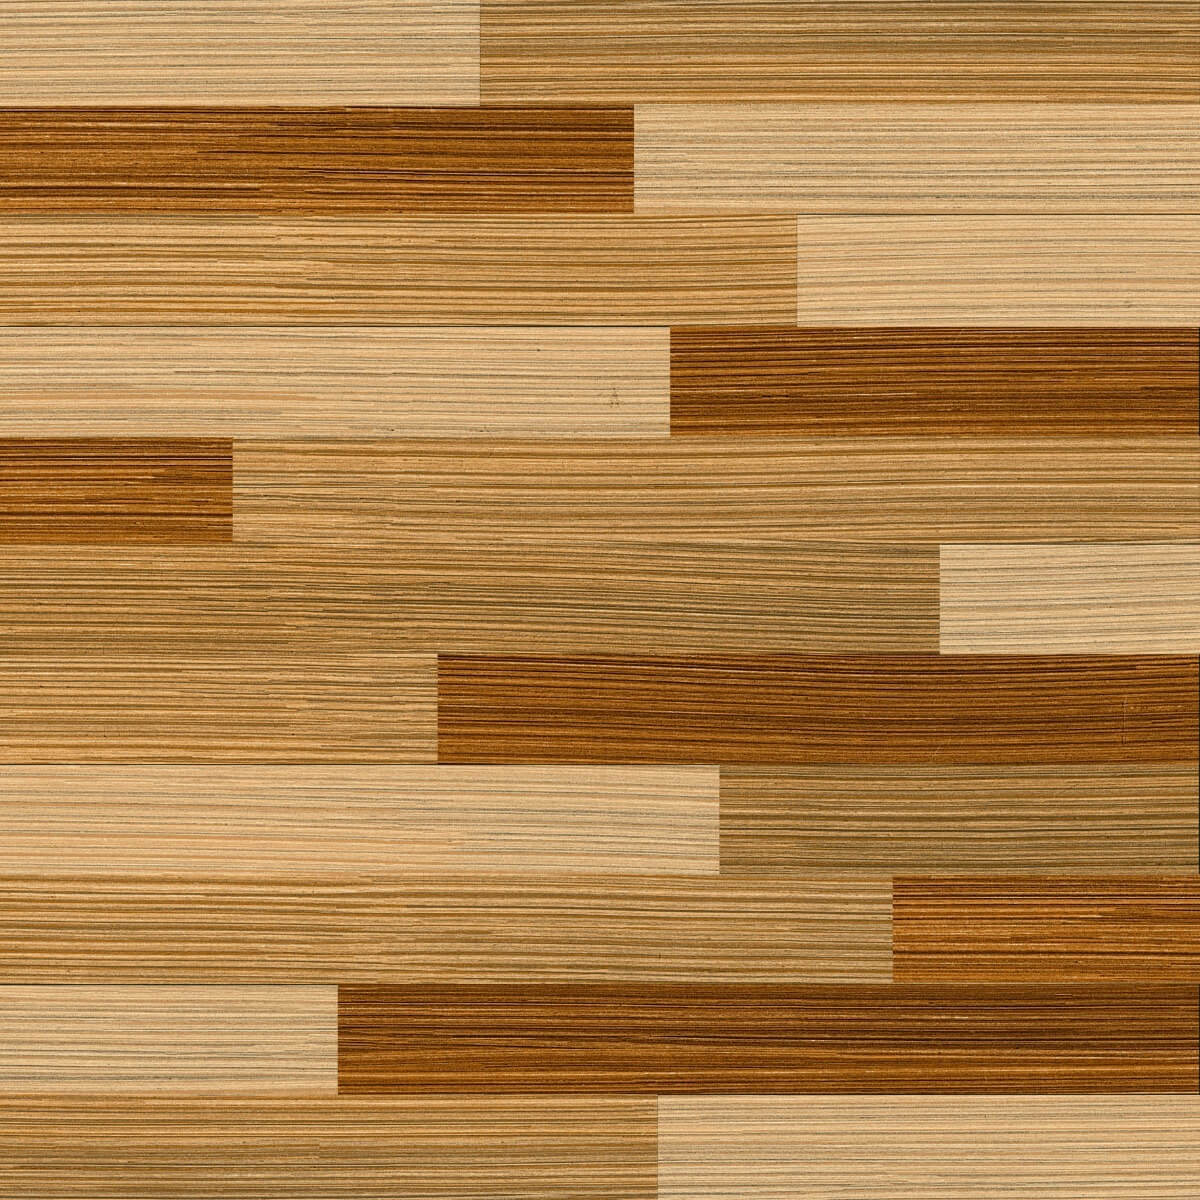 ODM Madera Strip Brown